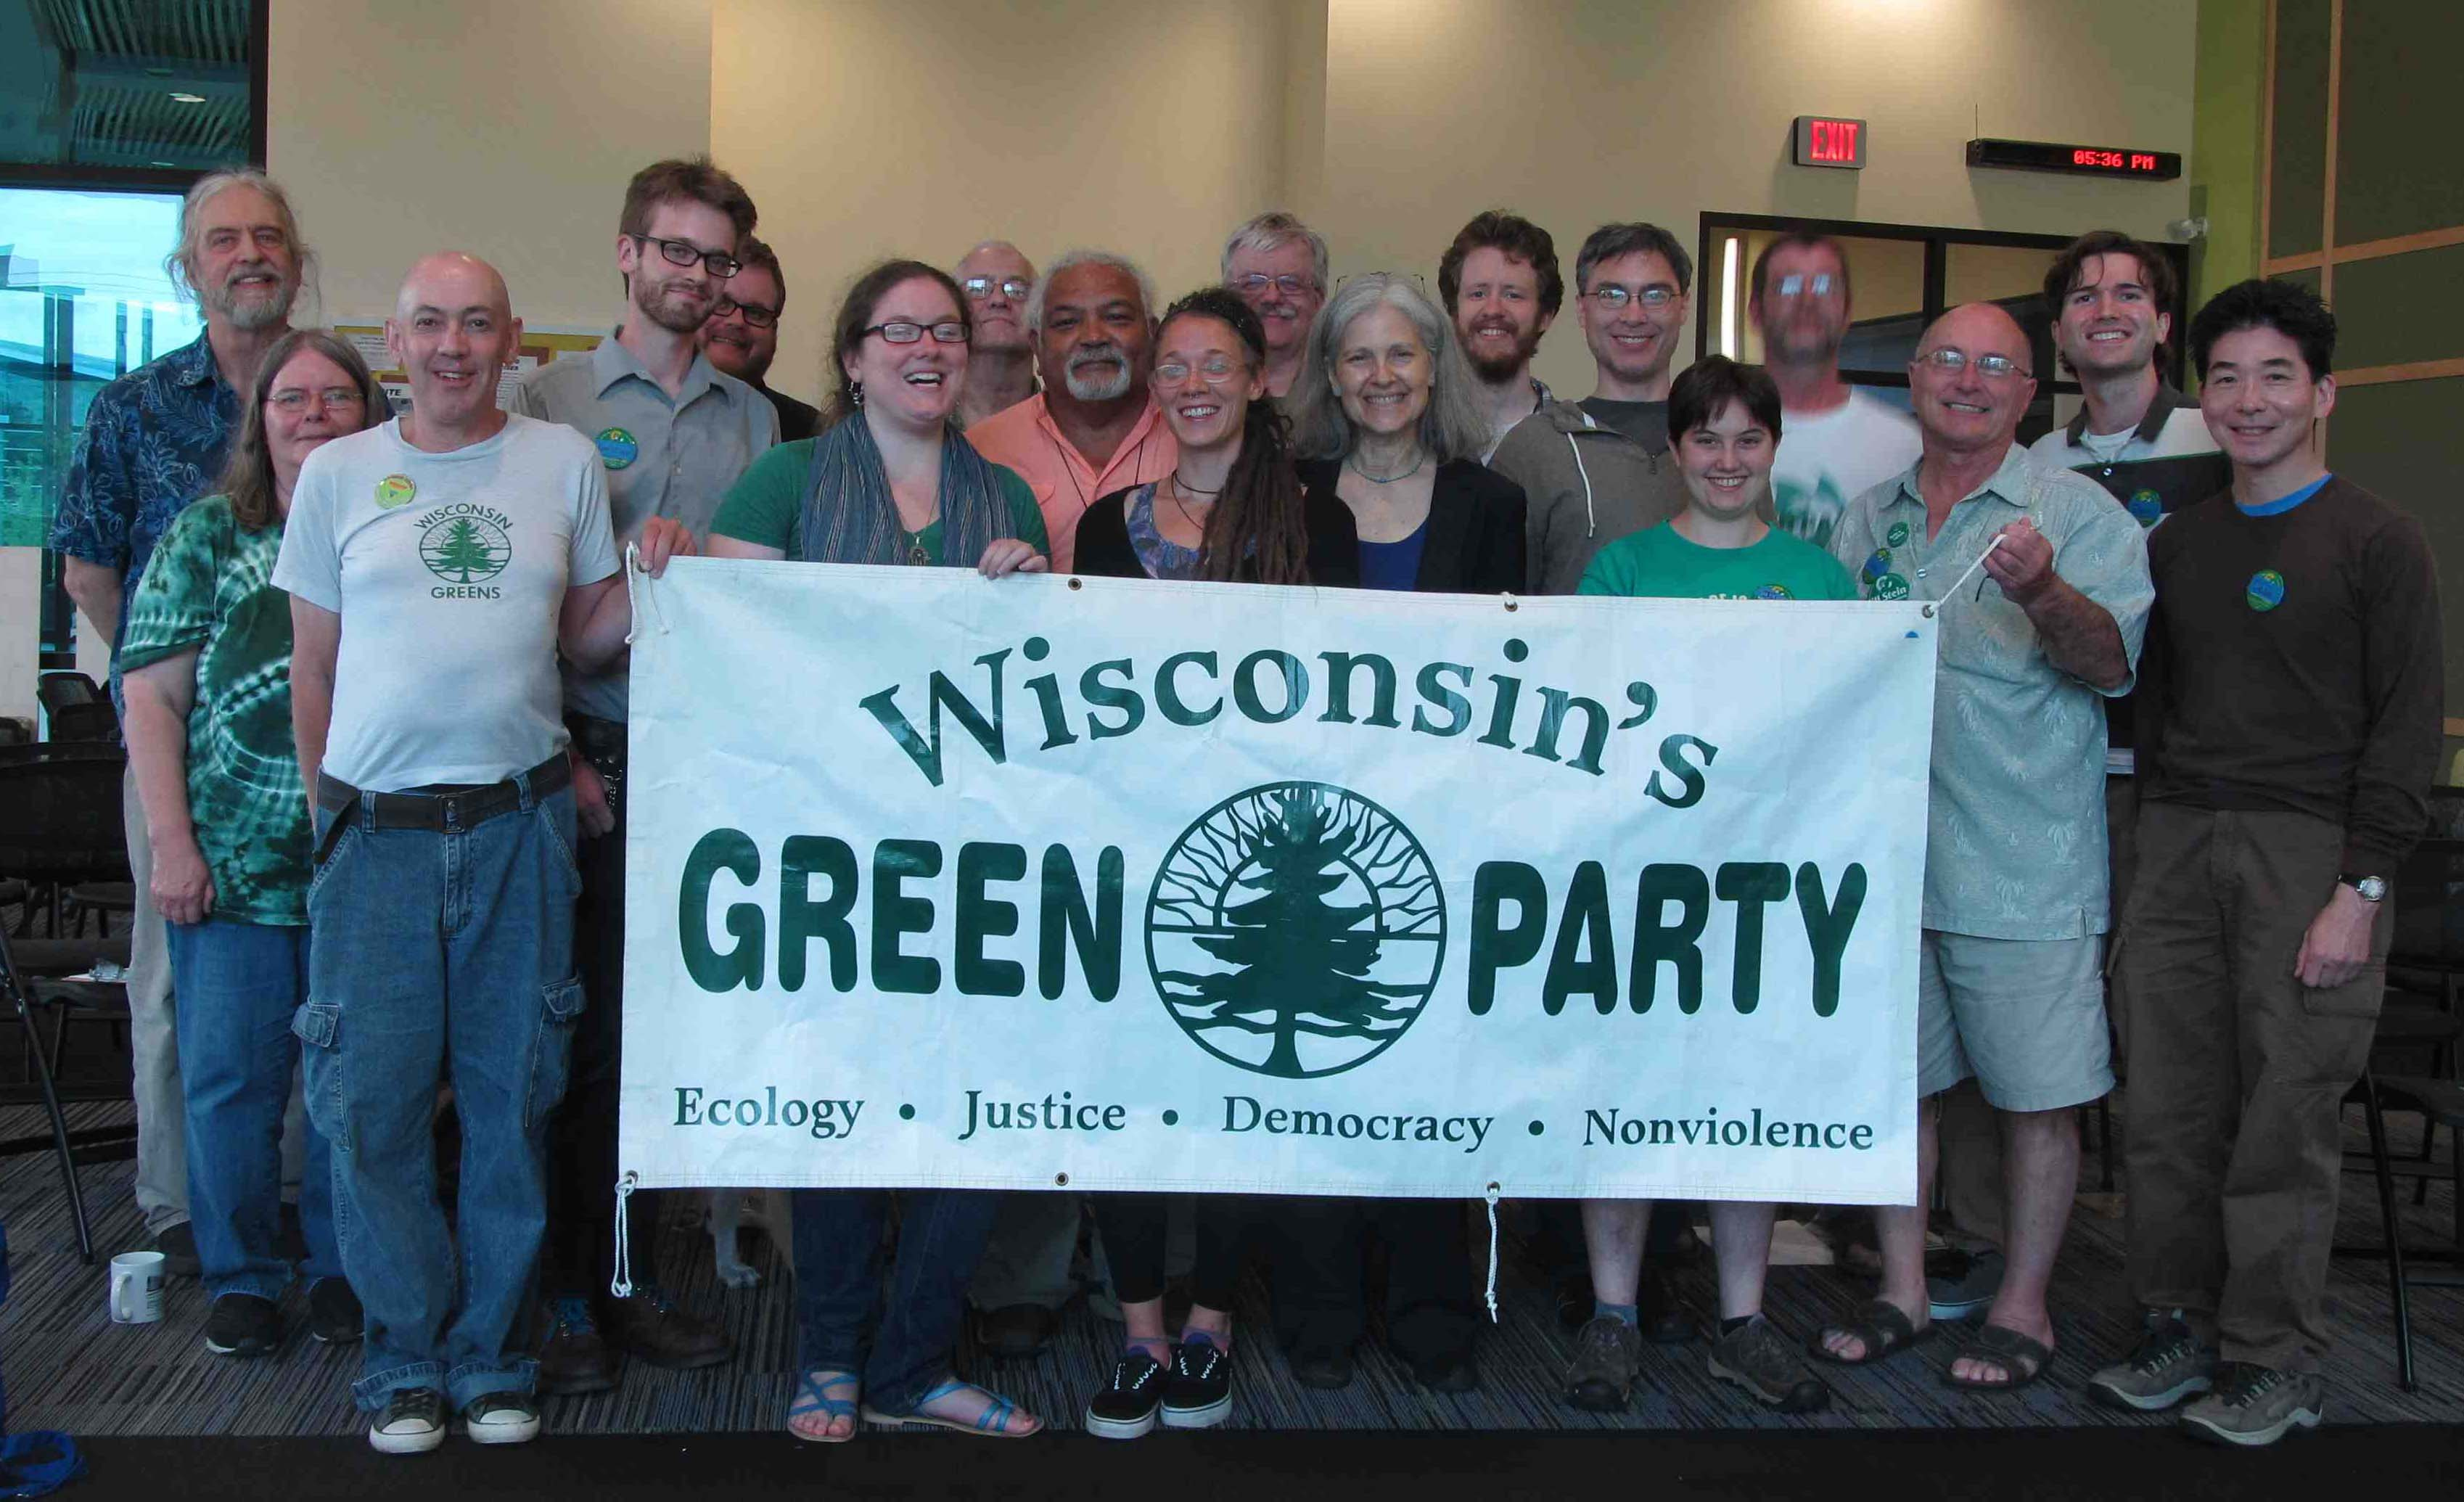 WI_Greens_with_banner_lowres.jpg